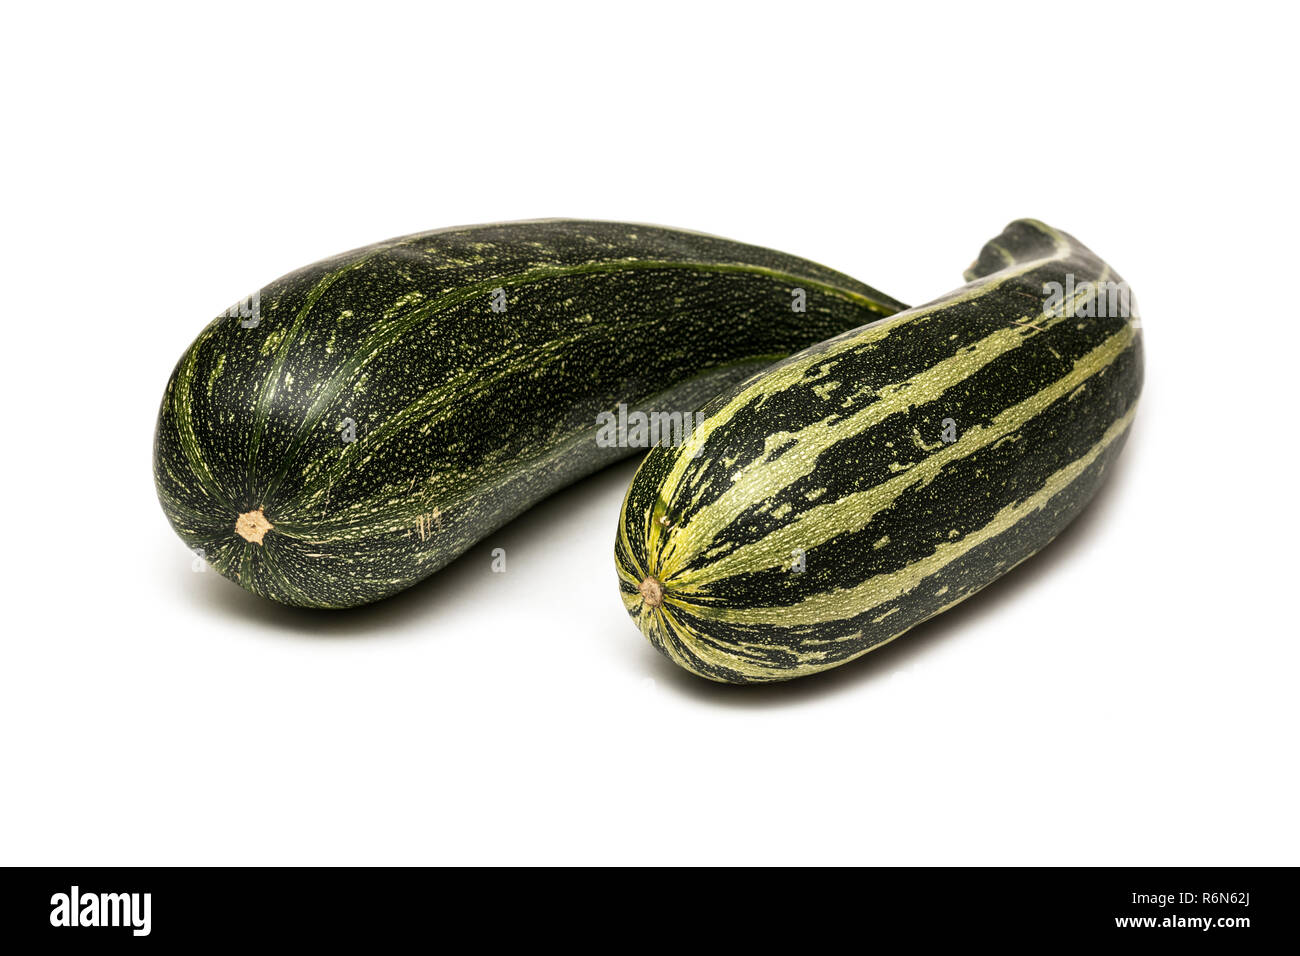 Zucchini on a white background - Stock Image